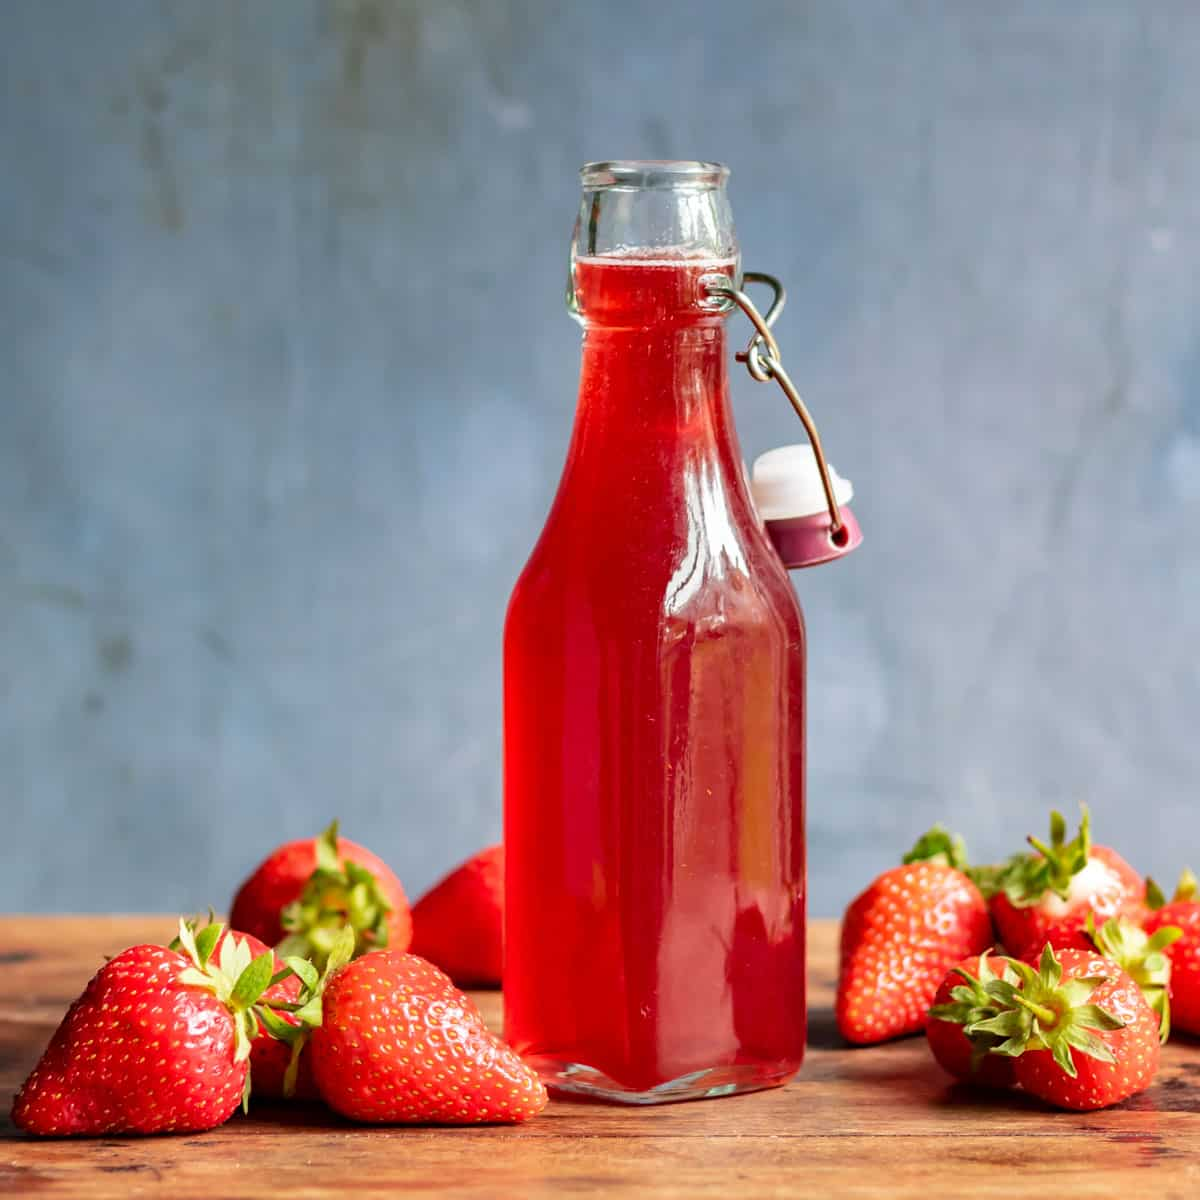 Bottle of strawberry syrup on a wooden table.